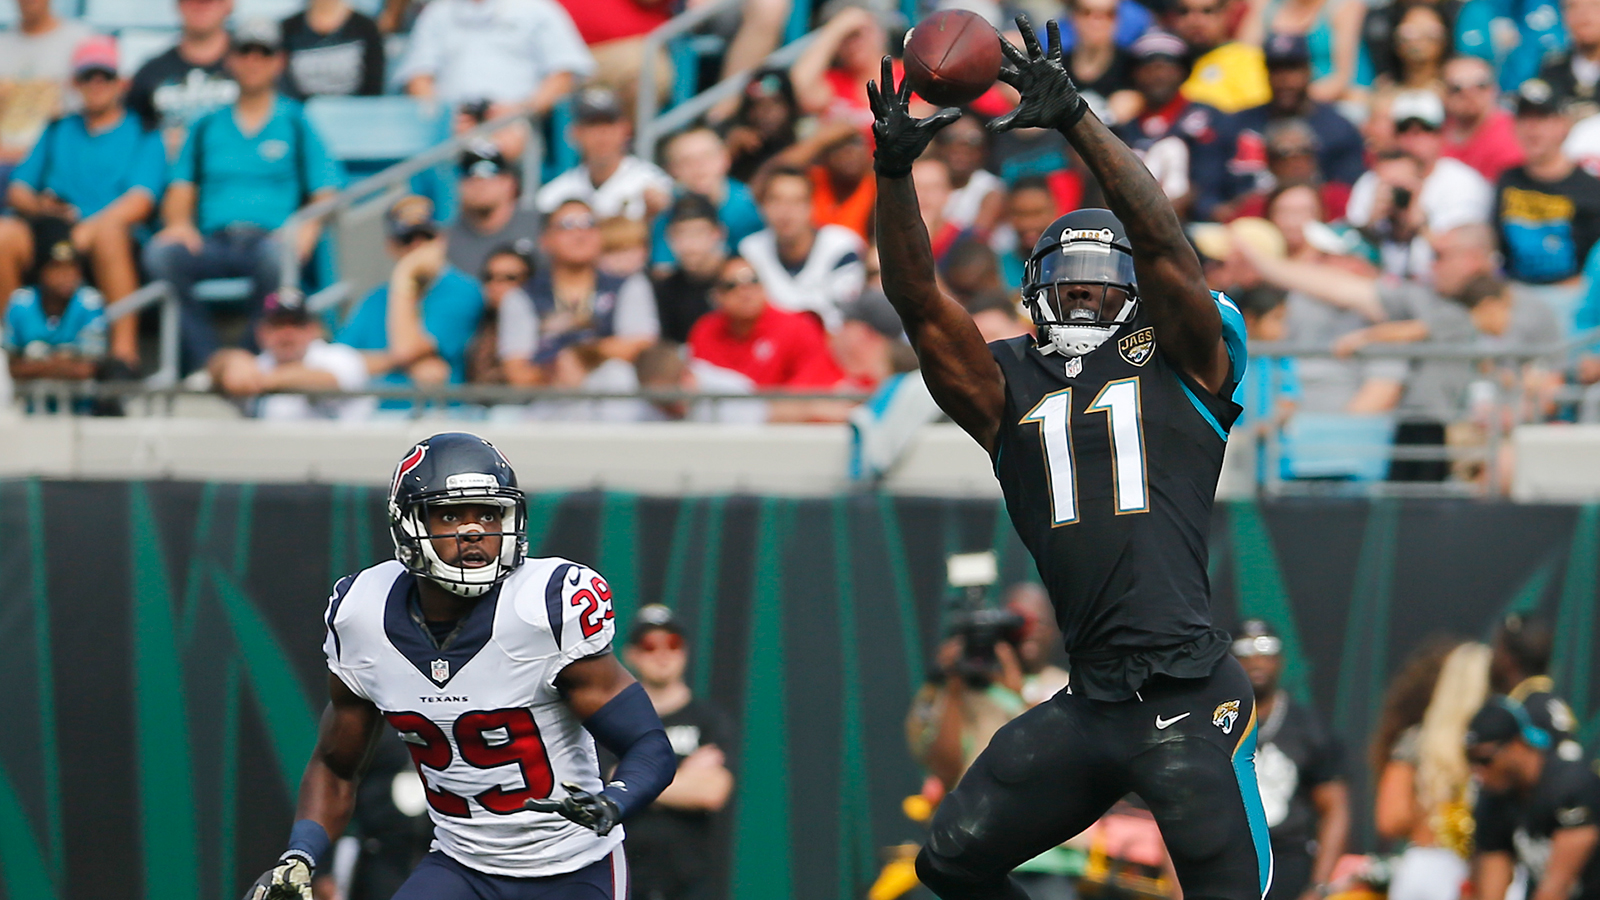 Jaguars can't stop skid, remain winless at home with loss to Texans